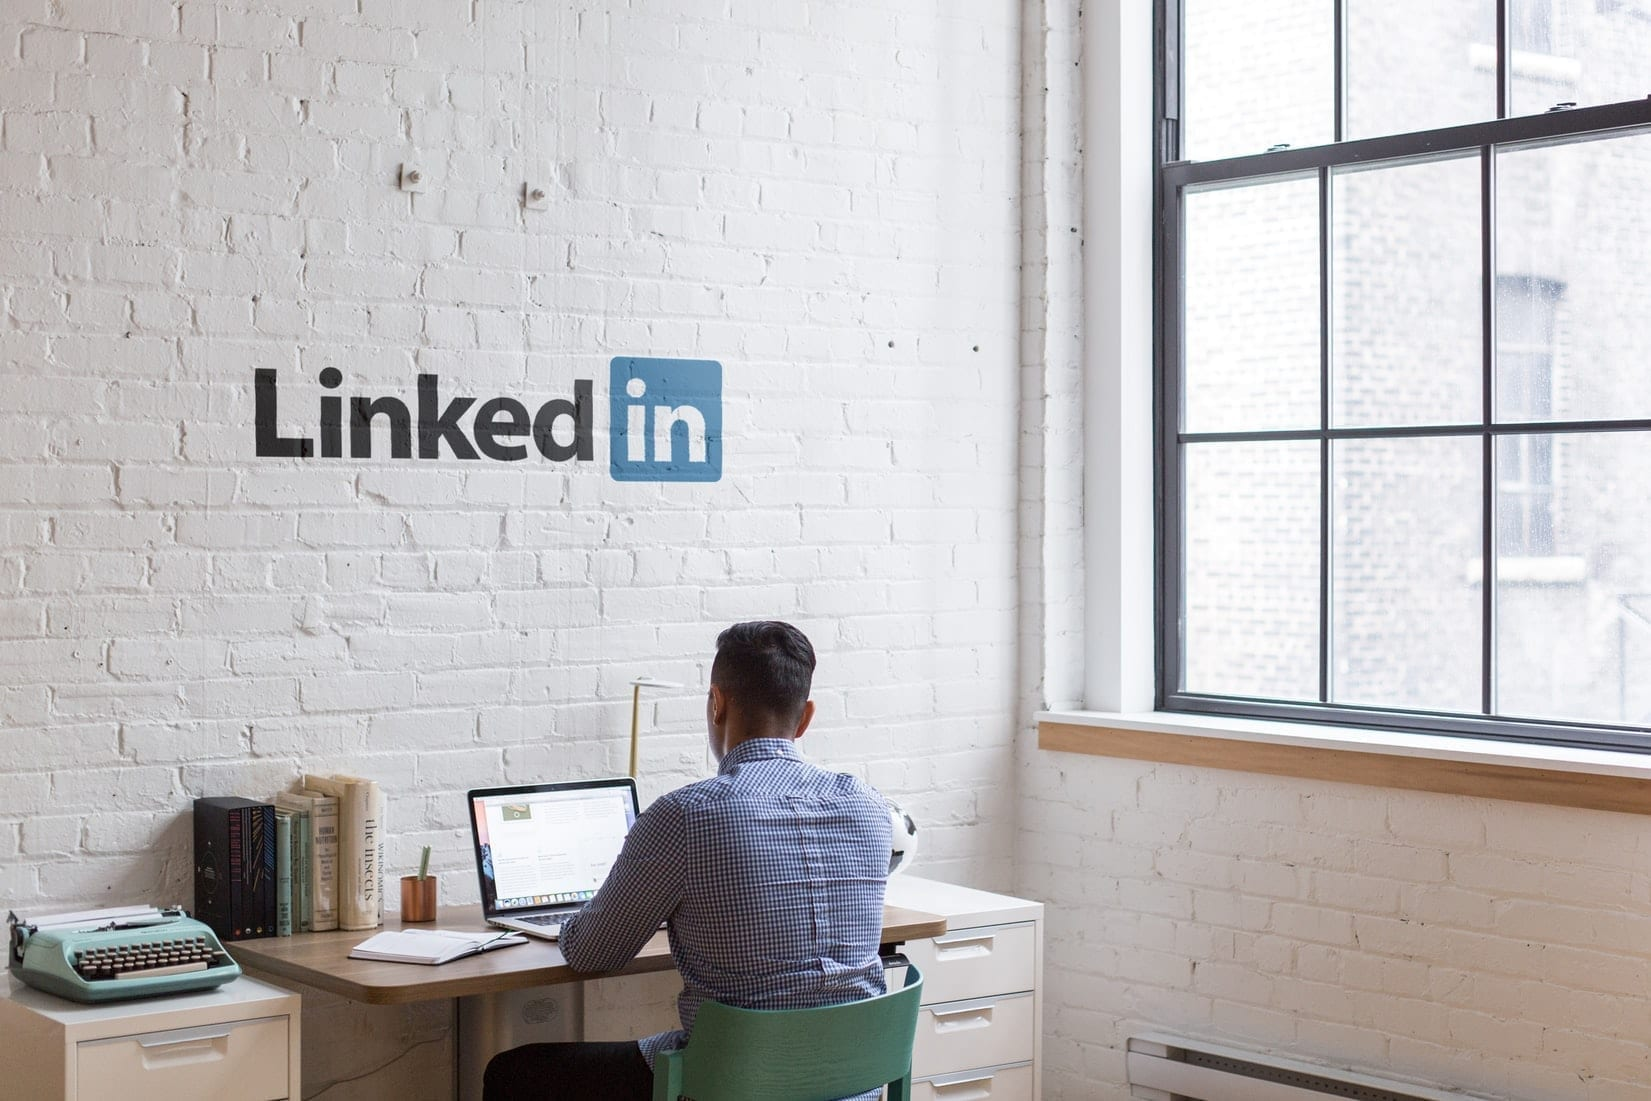 LinkedIn Has Launched A New Event Features, Stories and A Video Meeting Options via LinkedIn Messages